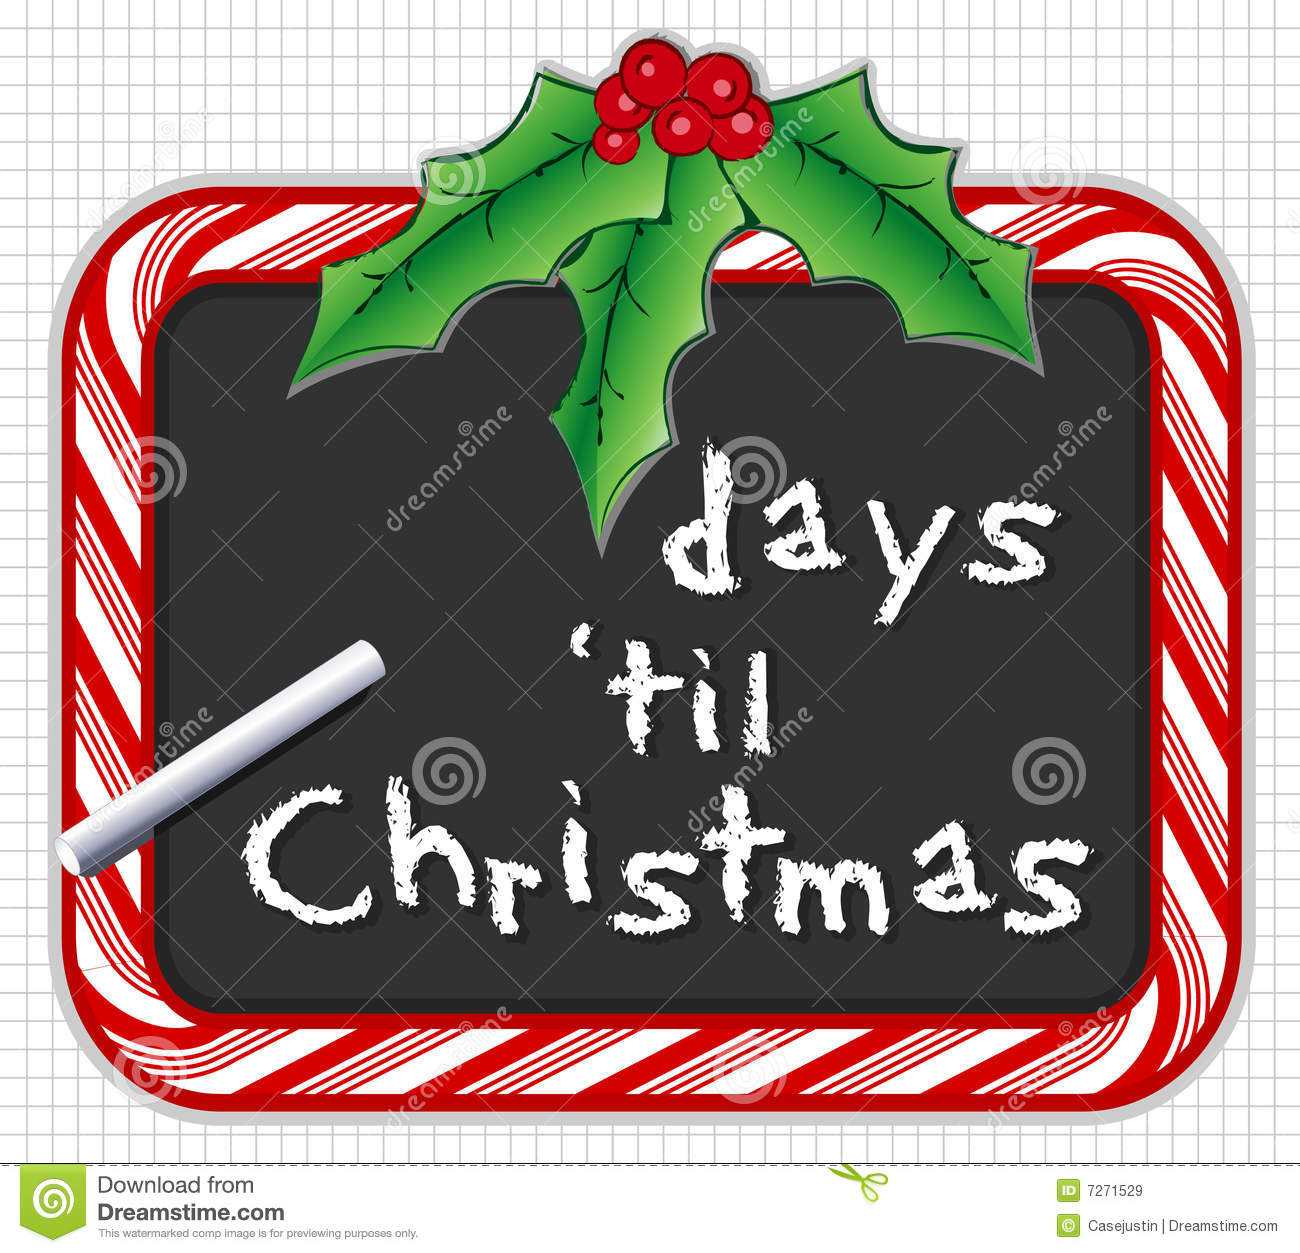 How Many Minutes Till Christmas.Your Christmas Countdown The Christmas